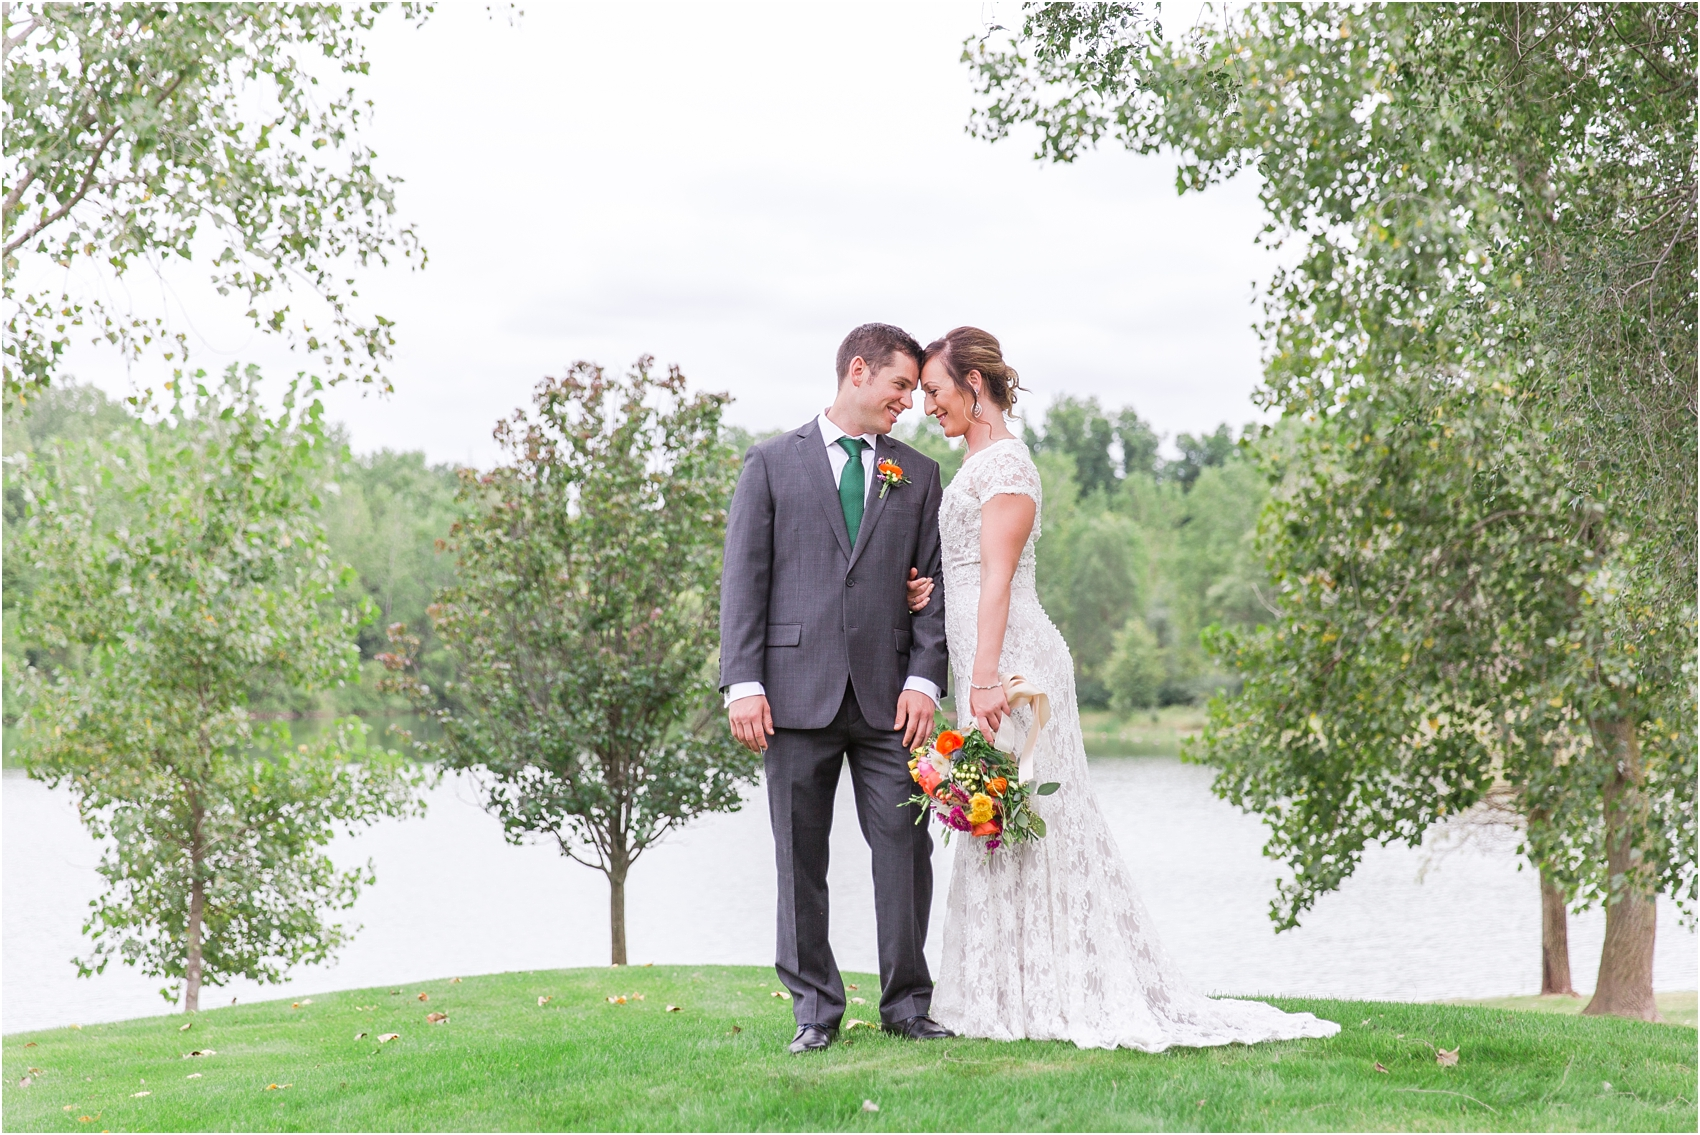 romantic-intimate-backyard-wedding-photos-at-private-estate-in-ann-arbor-mi-by-courtney-carolyn-photography_0037.jpg